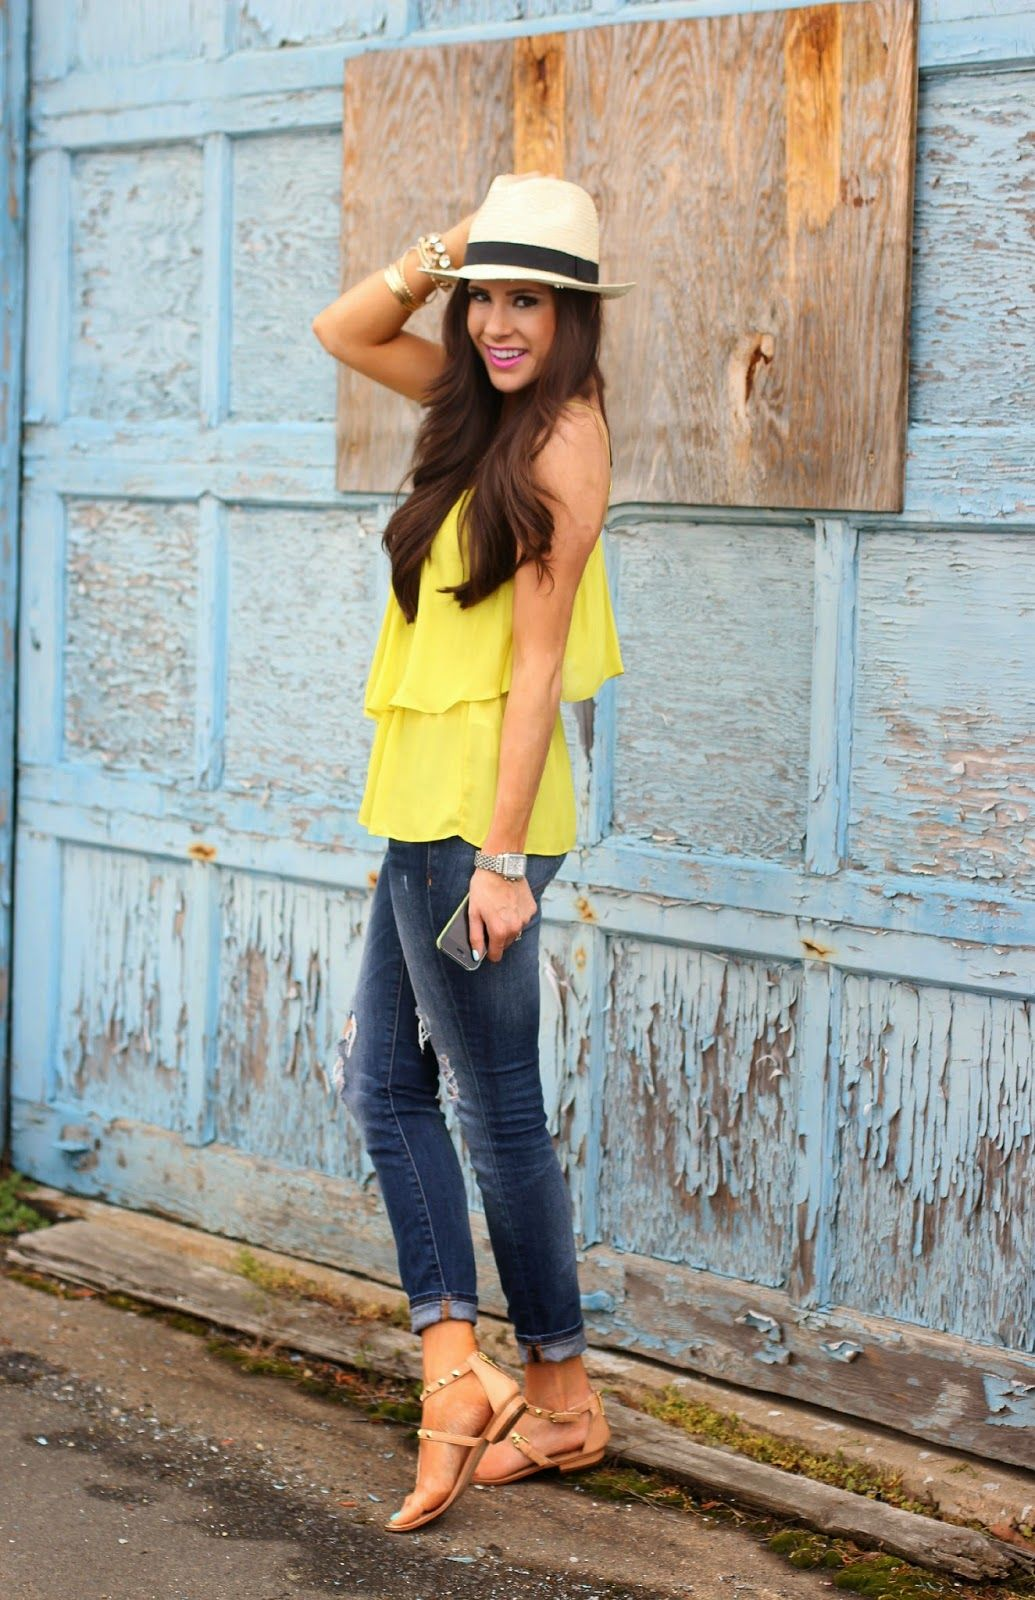 Www.TheSweetestThingBlog.com, Emily Gemma, How To Wear A